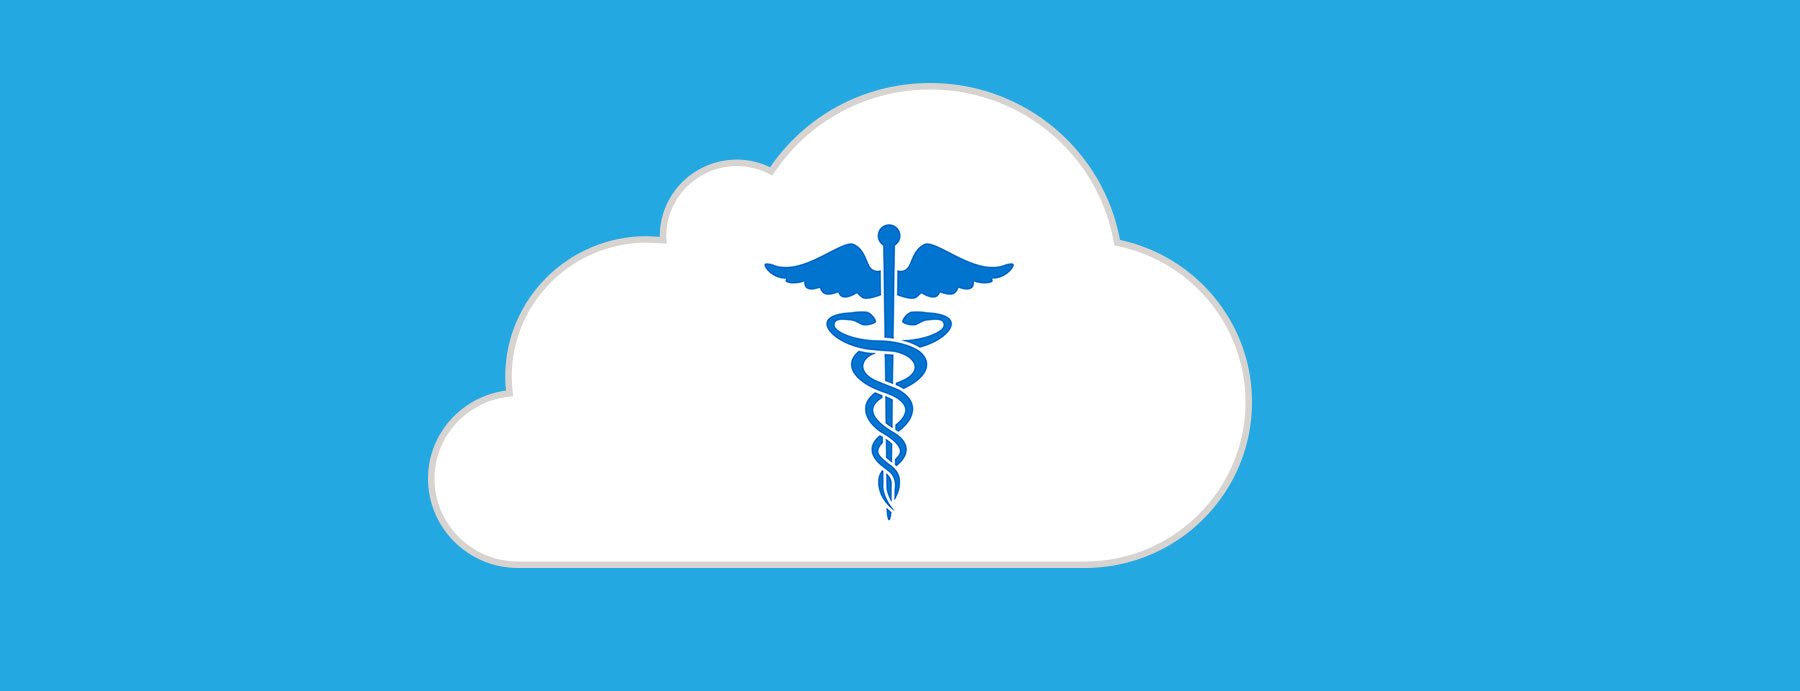 Keystone health partners blog medical billing experts practice by now youve almost certainly heard of the cloud when it comes to practice management software ehrs and more but what does it mean and how can the buycottarizona